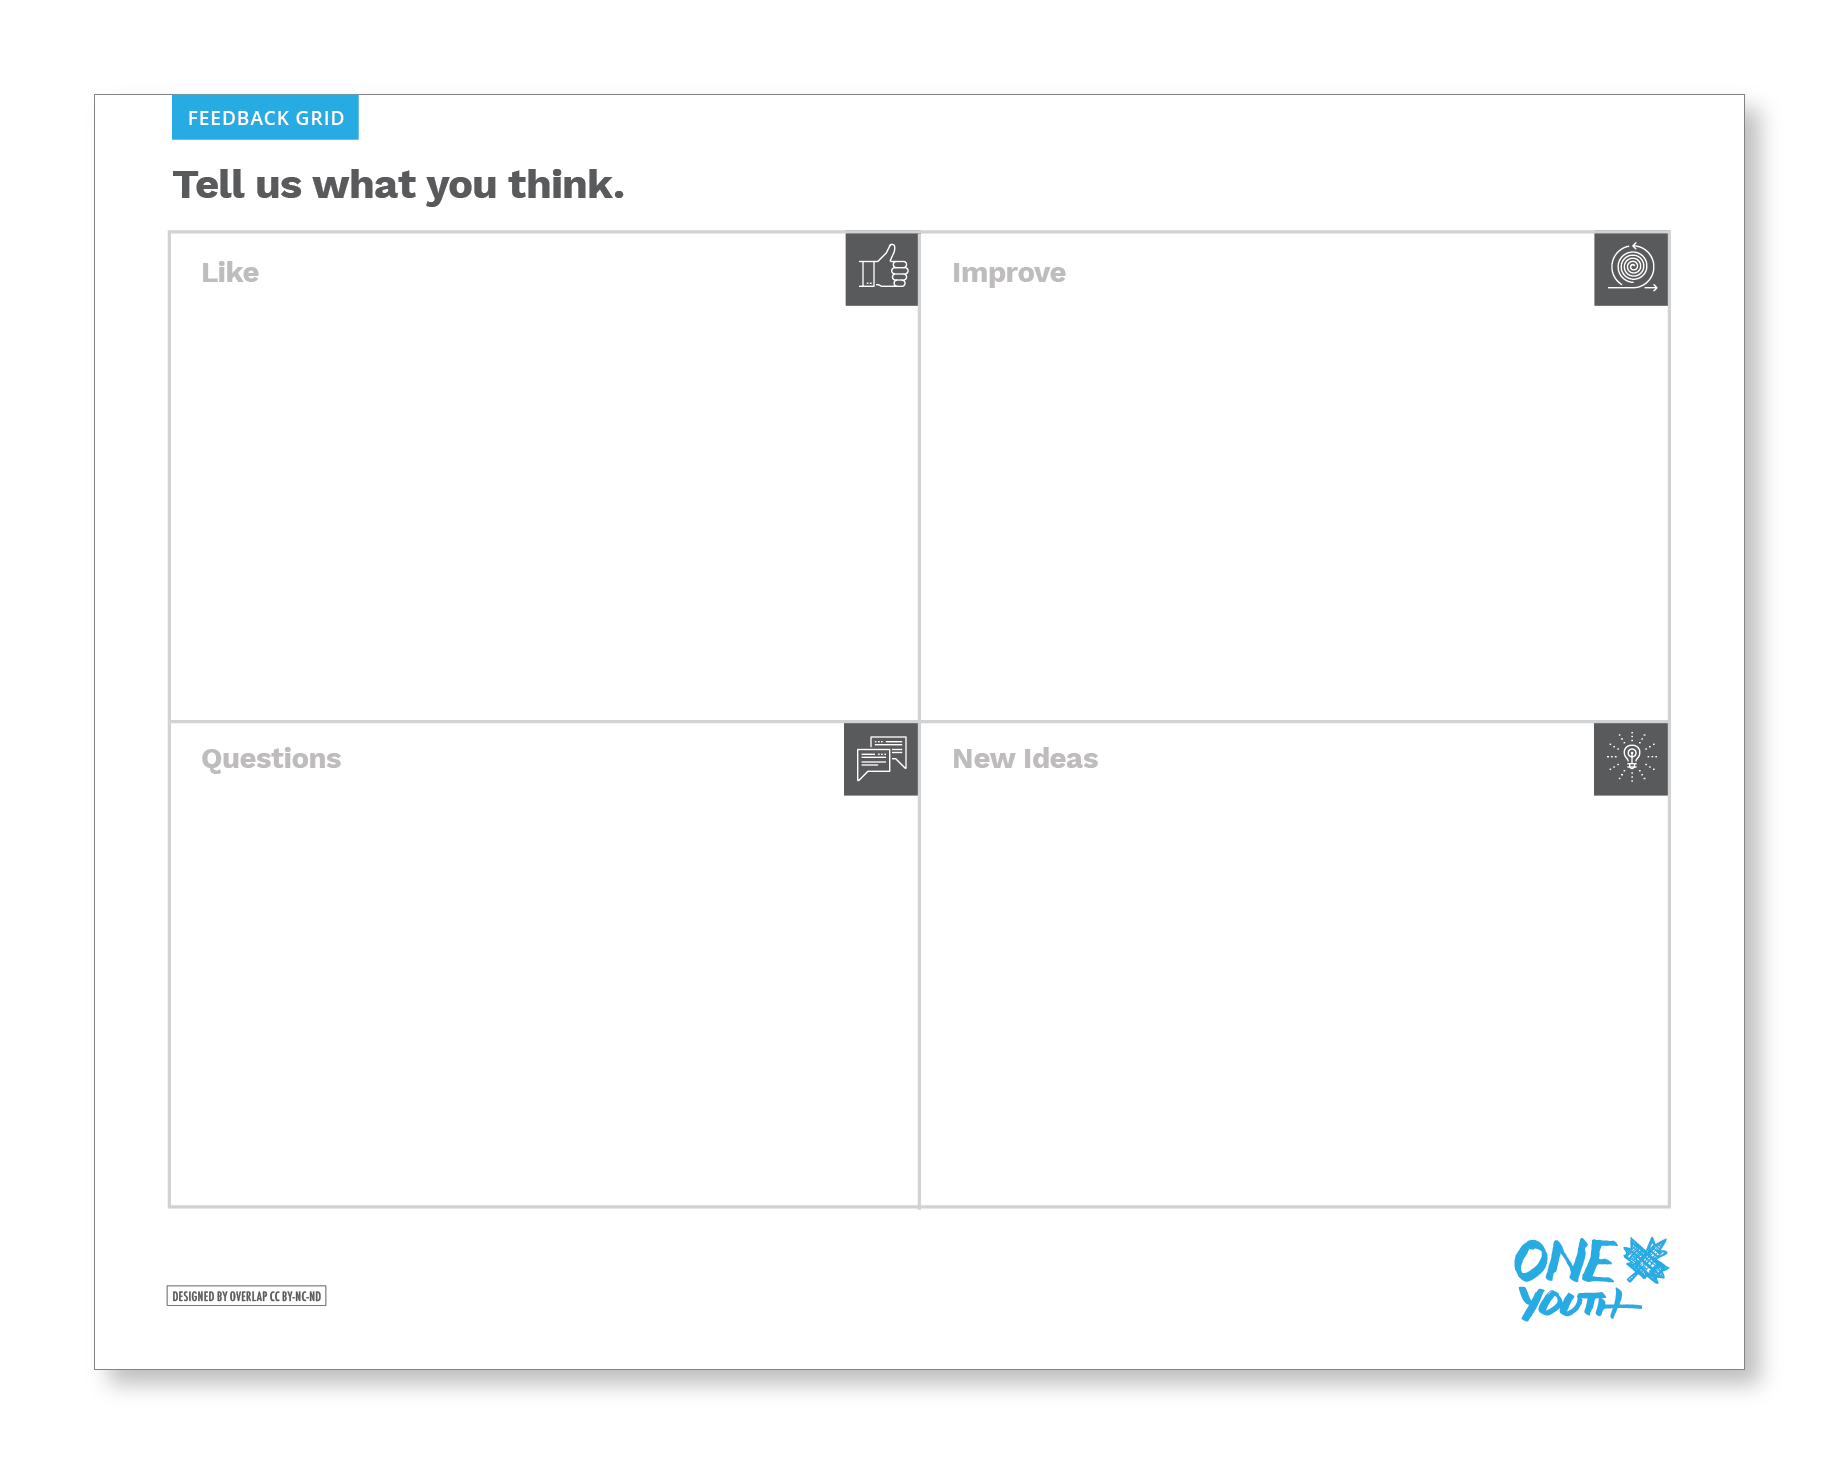 This is what the Feedback Grid looks like before you begin using it.